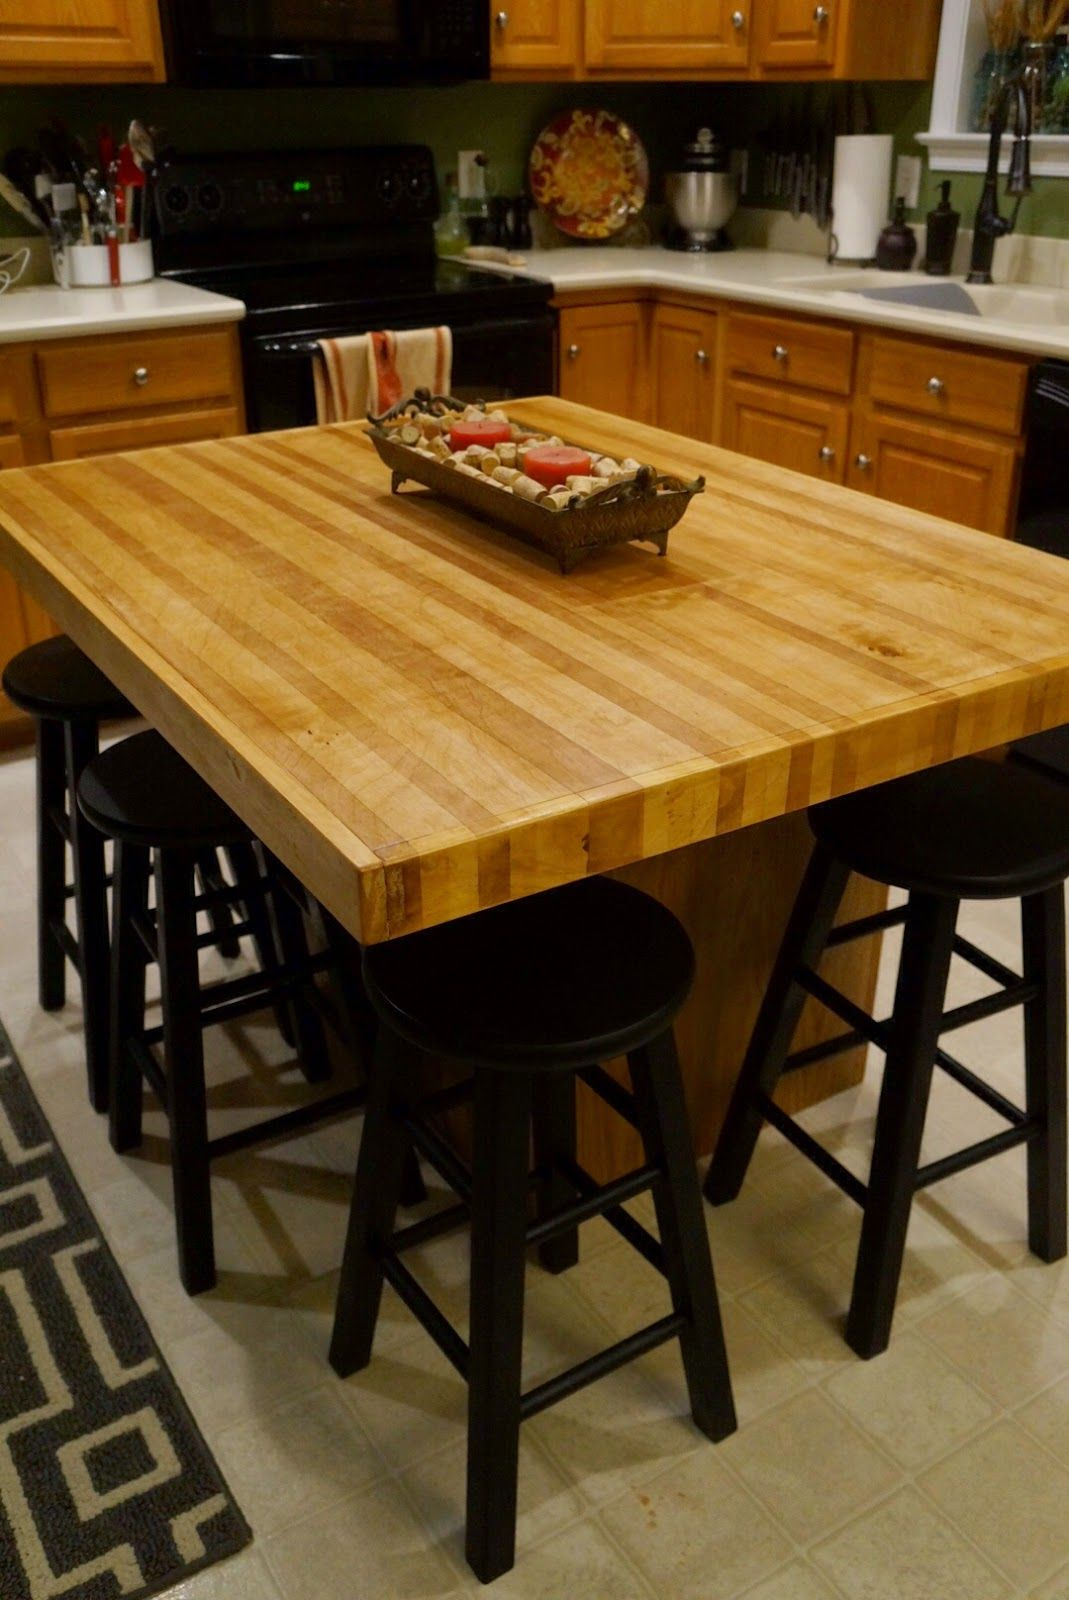 Andiamo diy butcher block island countertop